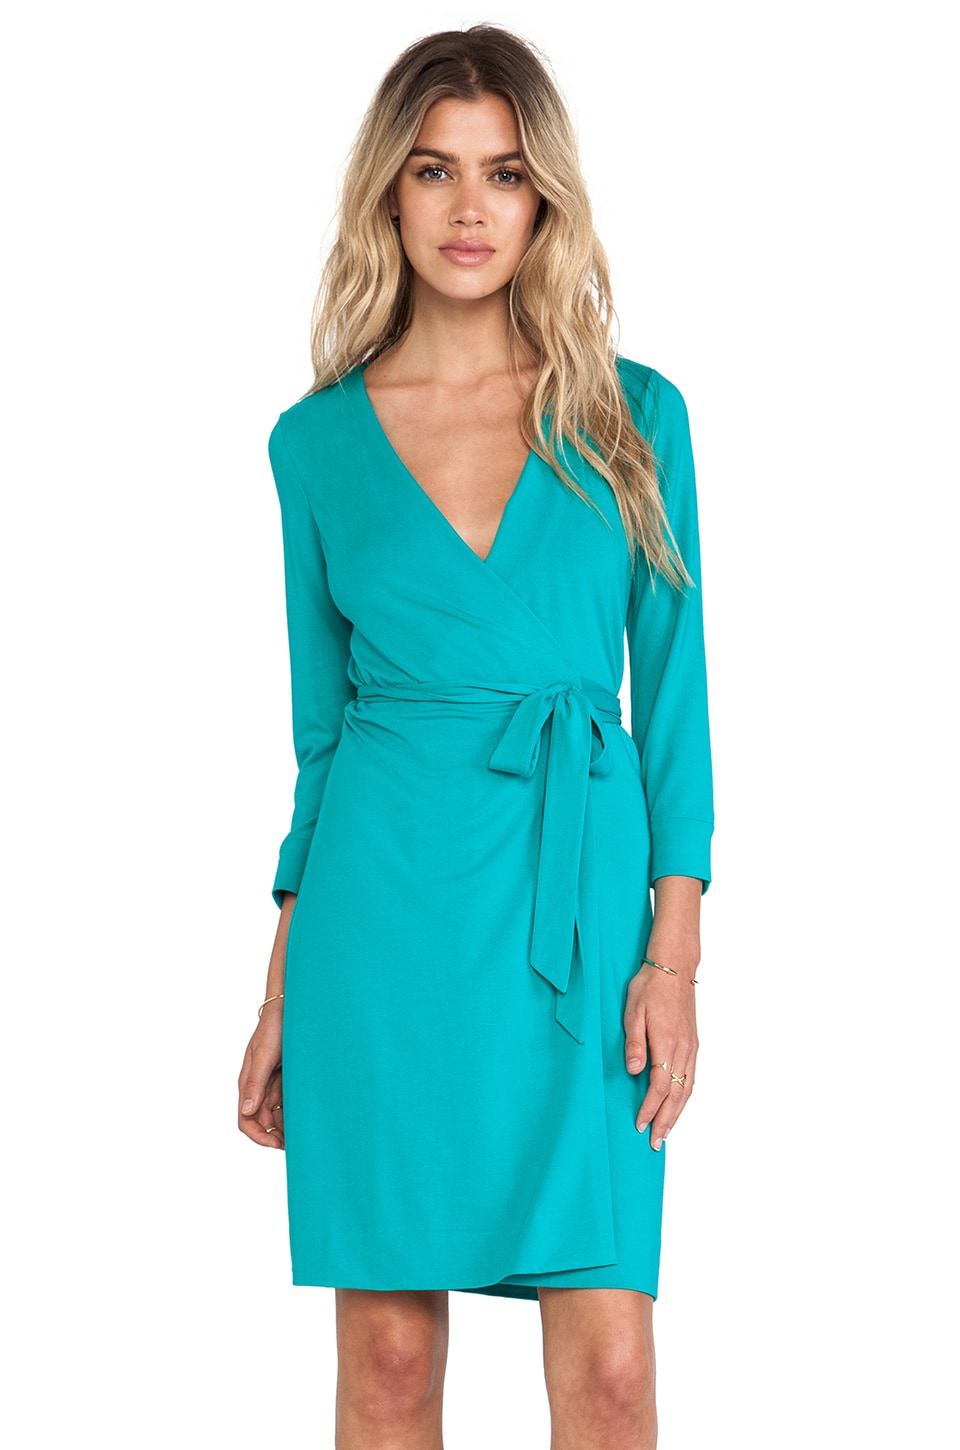 Diane von Furstenberg New Julian Wrap Mini in Zephyr Green